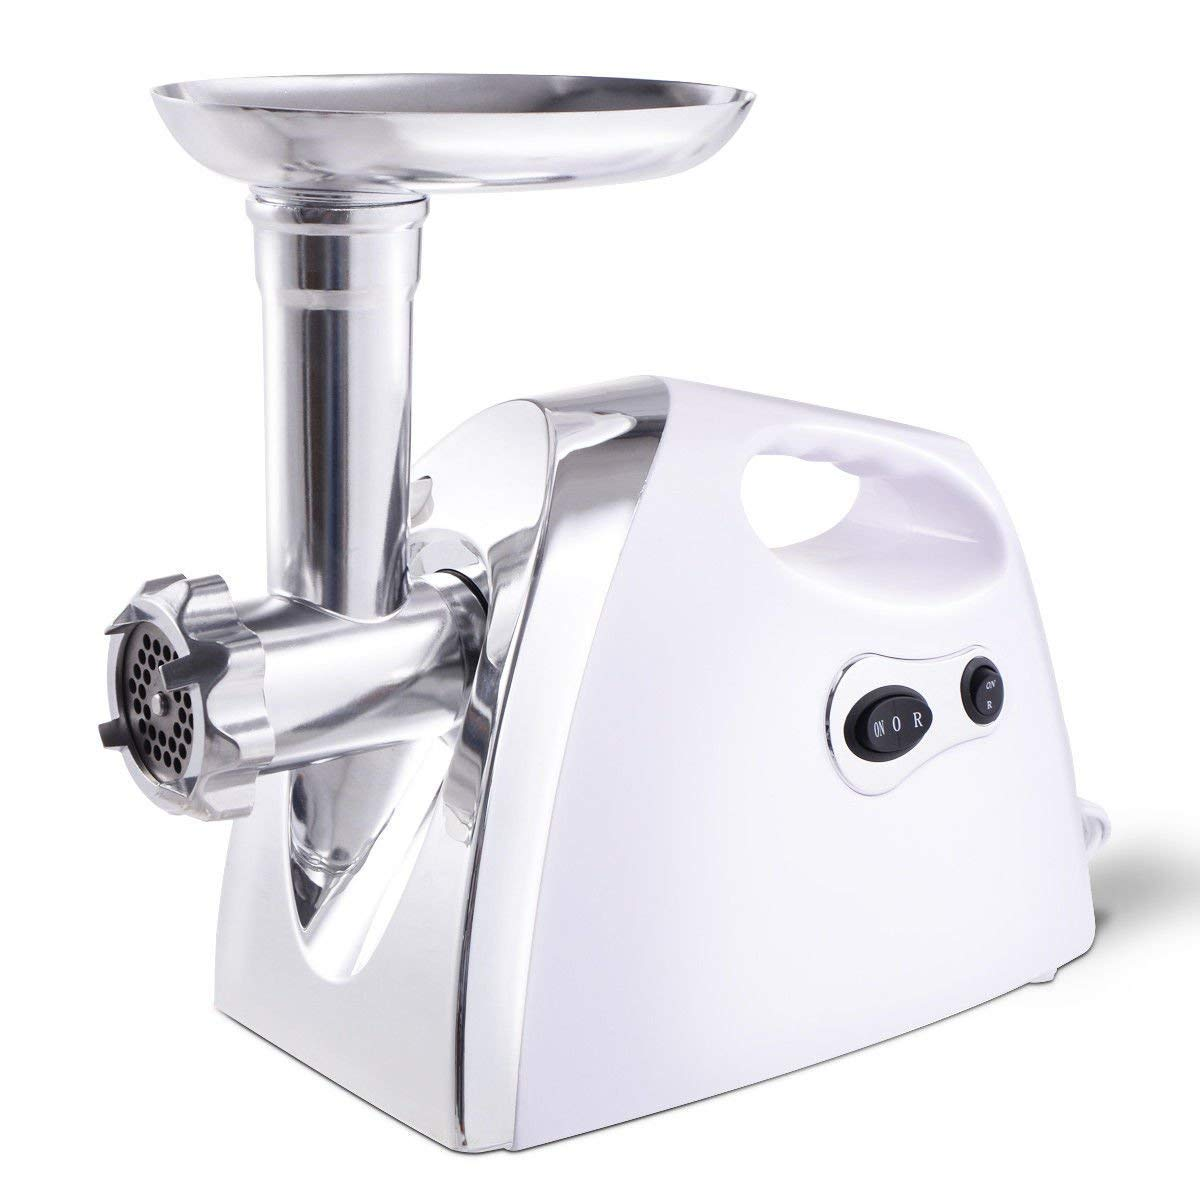 HAPPYGRILL Electric Meat Grinder 2800W Stainless Cutter Sausage Stuffer Maker Home Kitchen Tool by HAPPYGRILL